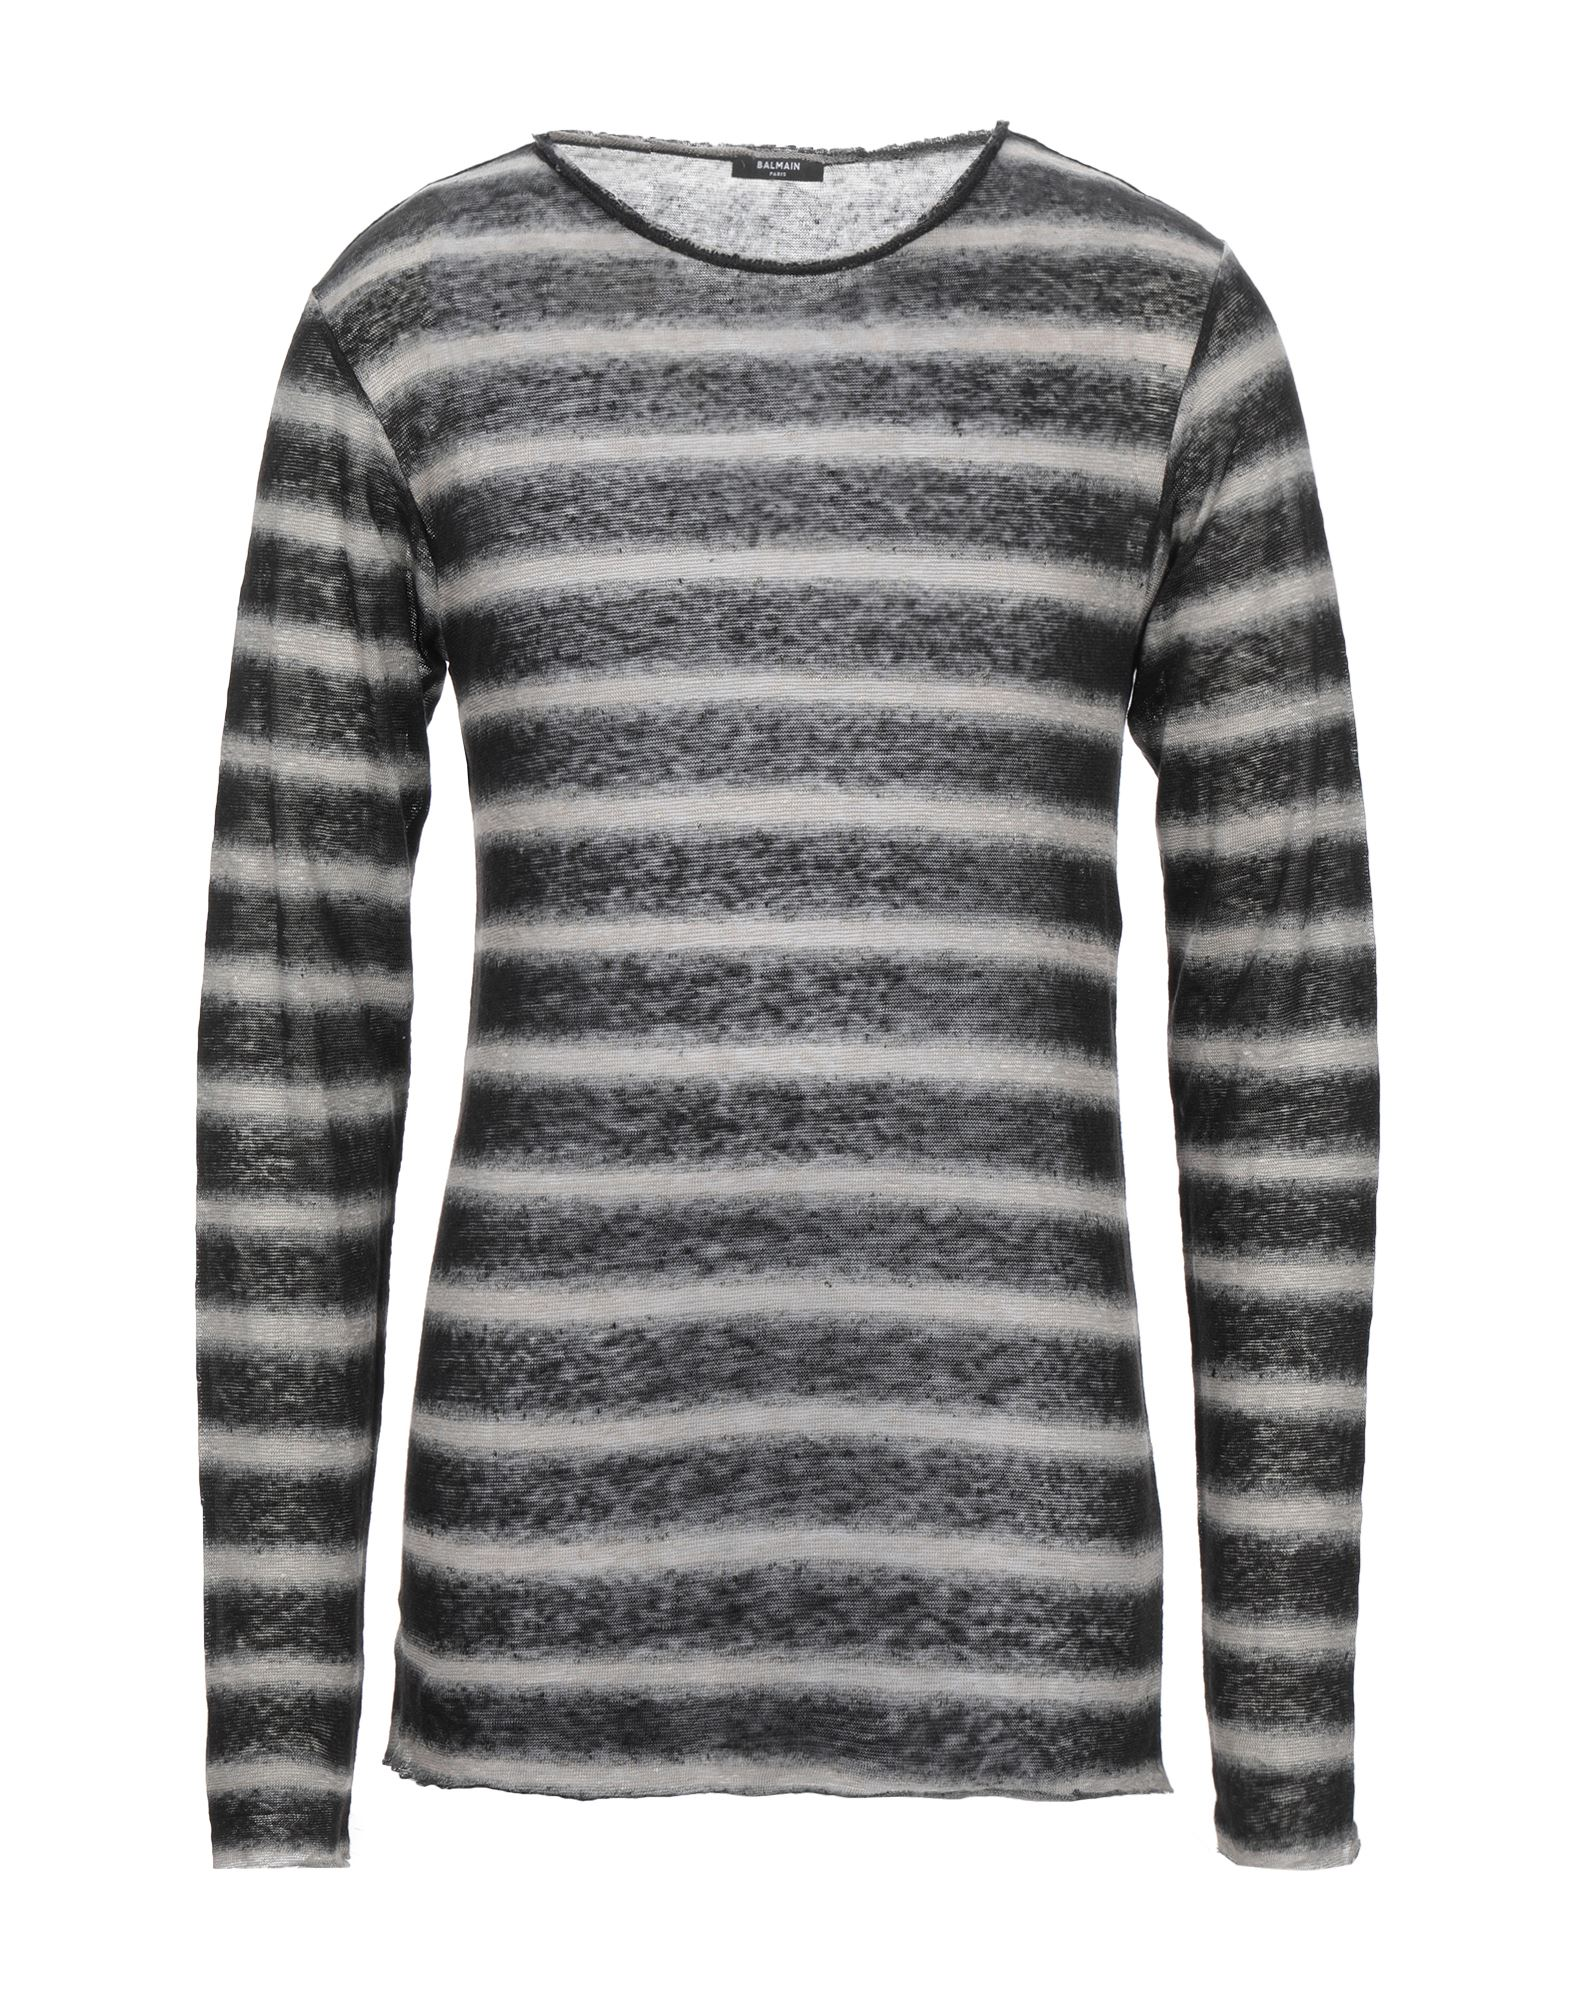 BALMAIN Sweaters. knitted, round collar, stripes, long sleeves, no pockets, no appliqués, lightweight knit, large sized. 100% Linen